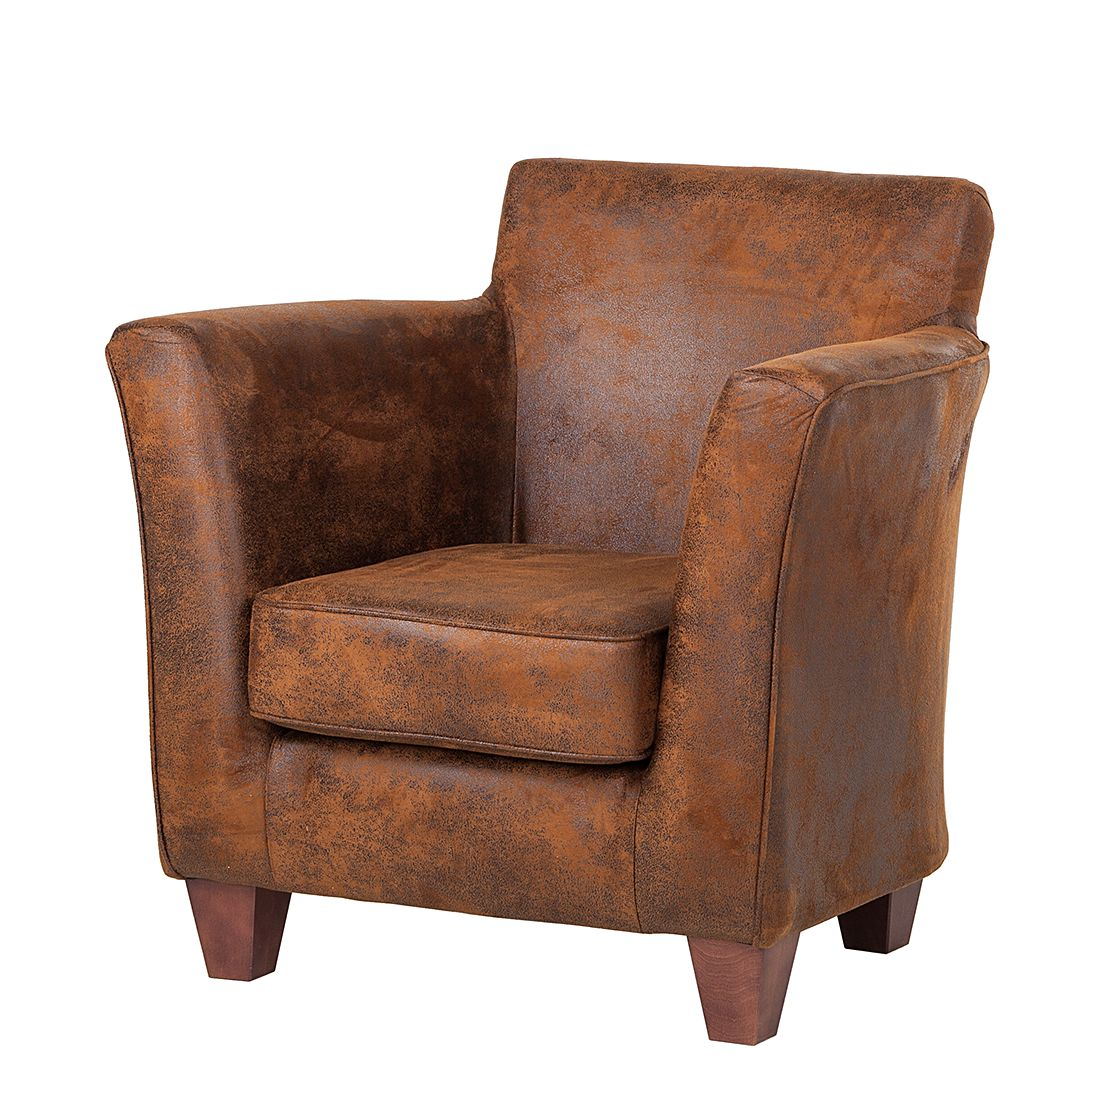 Fauteuil Even - Microfibre marron, ars manufacti